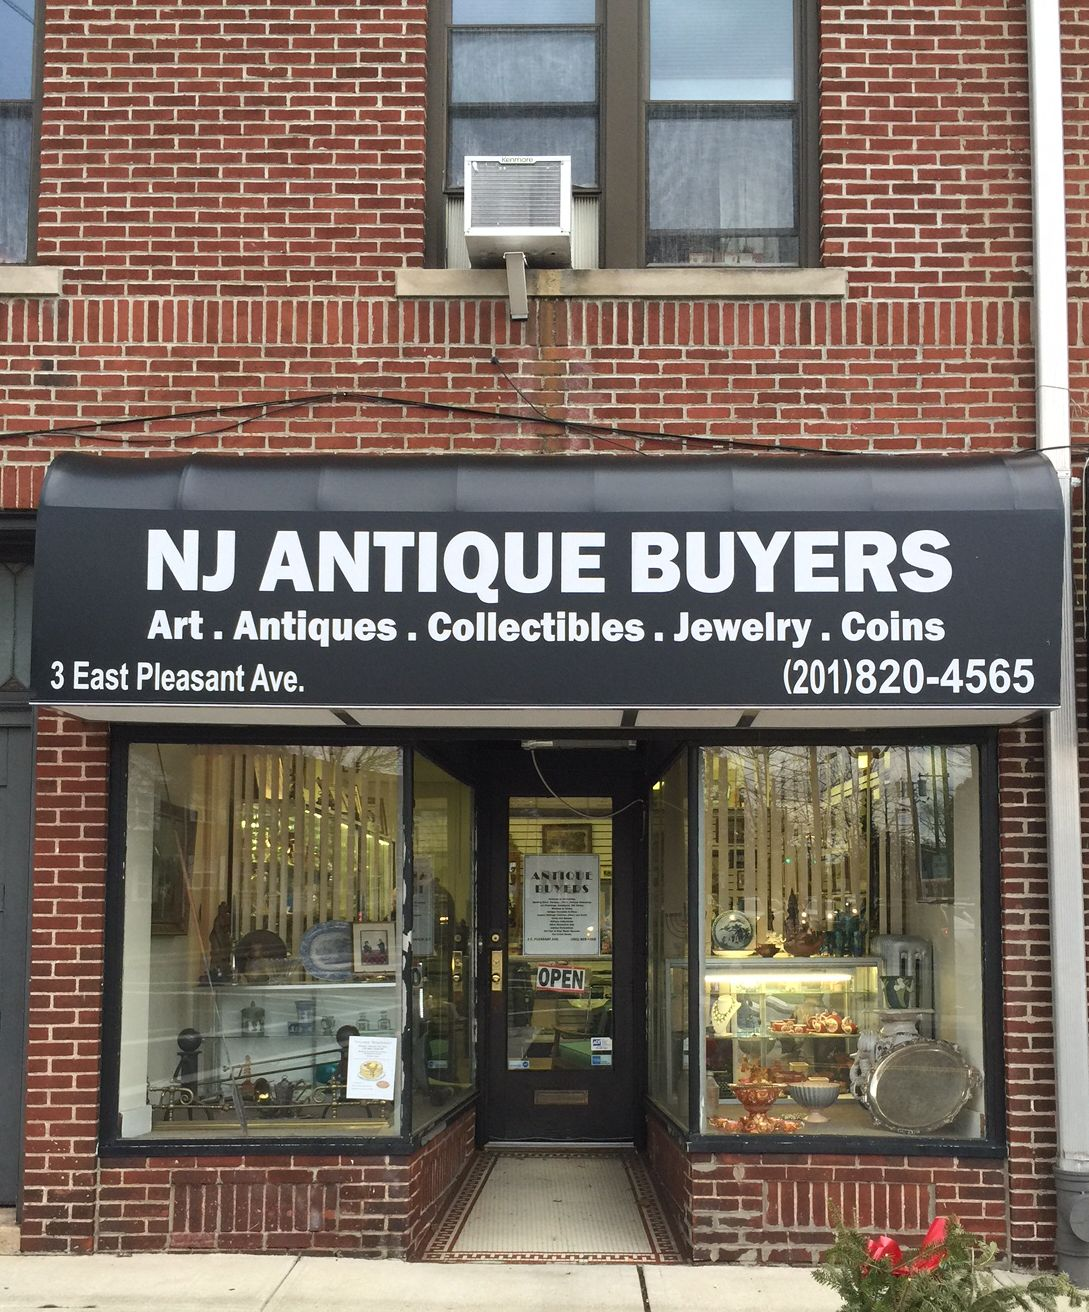 Nj Antiques Buyers Coupons Near Me In Maywood 8coupons